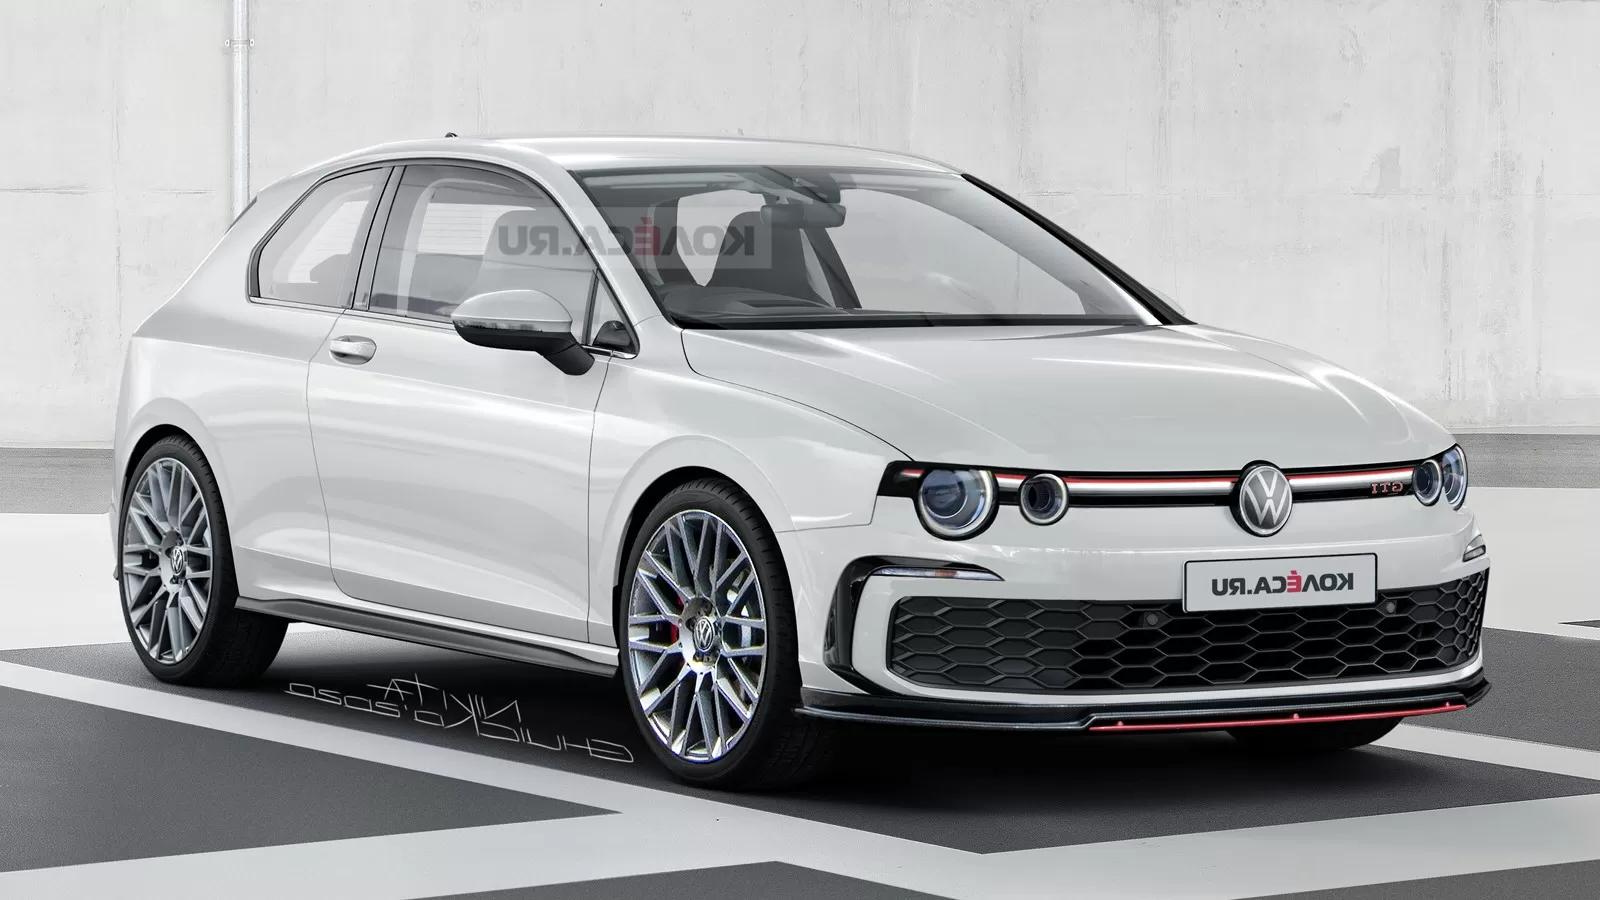 Dressing The 2021 Vw Golf Gti Mk8 With Retro Cues Might Not